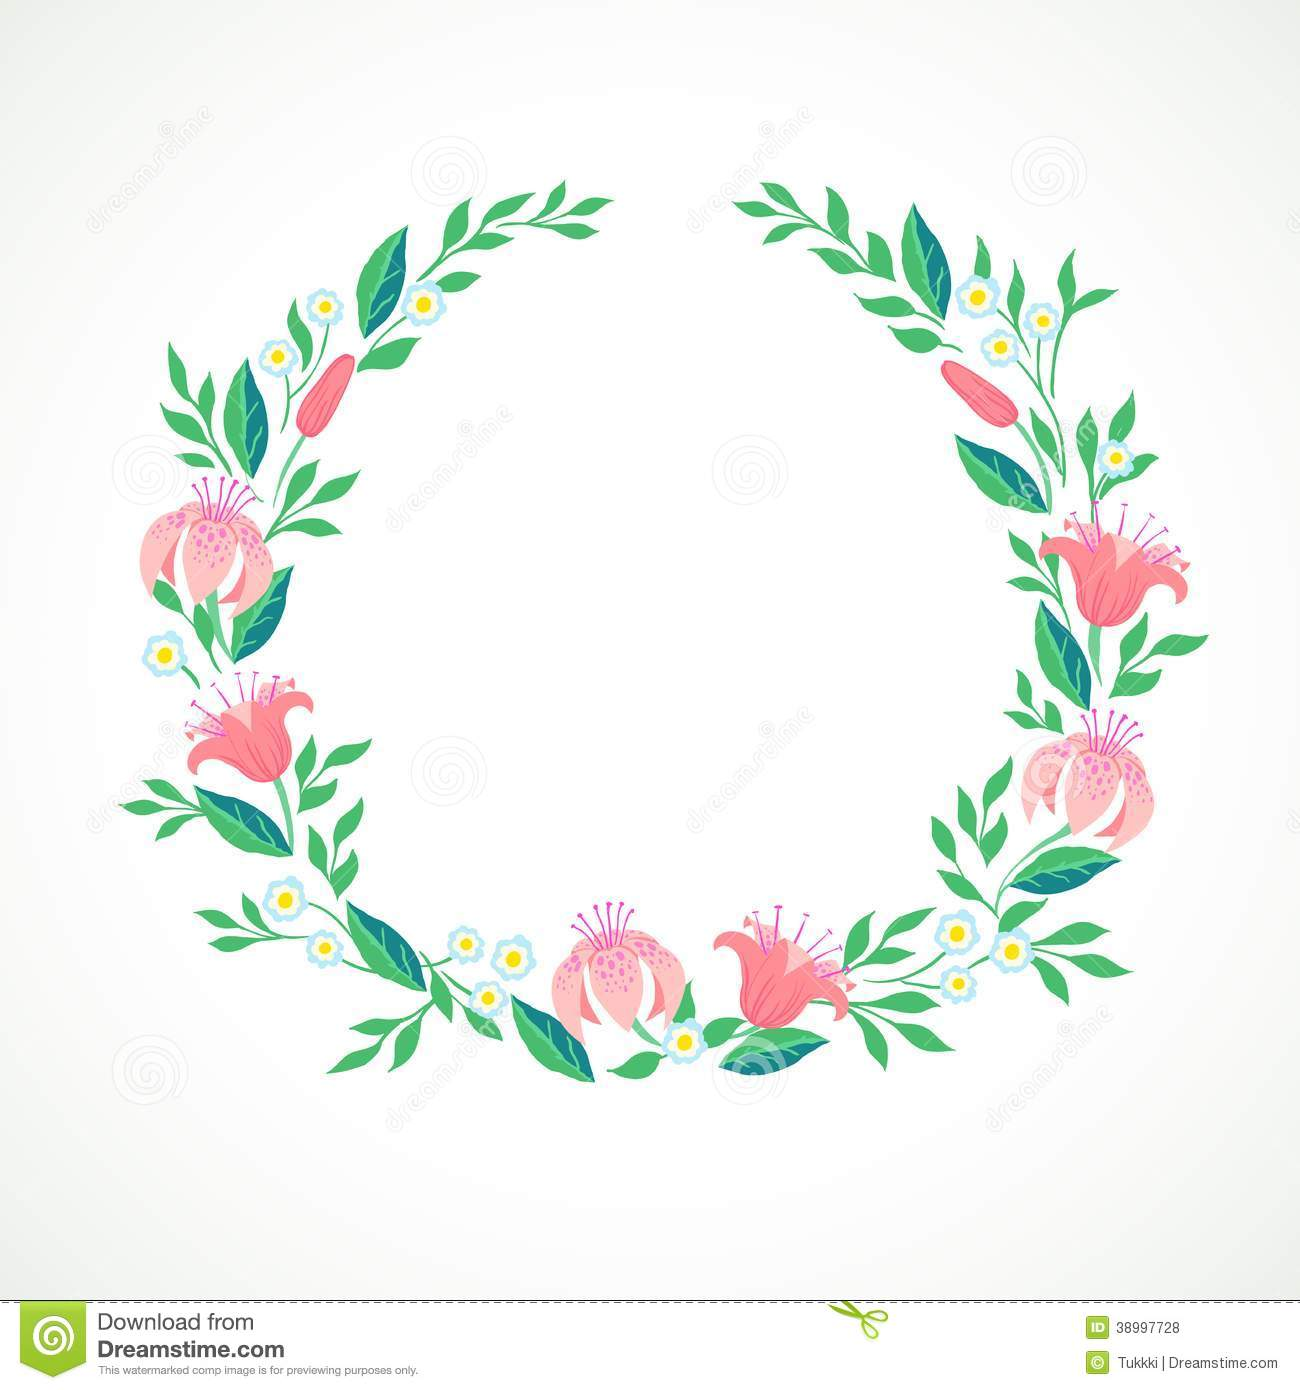 ... Illustration Of A Wreath With Flowers Stock Vector - Image: 38997728